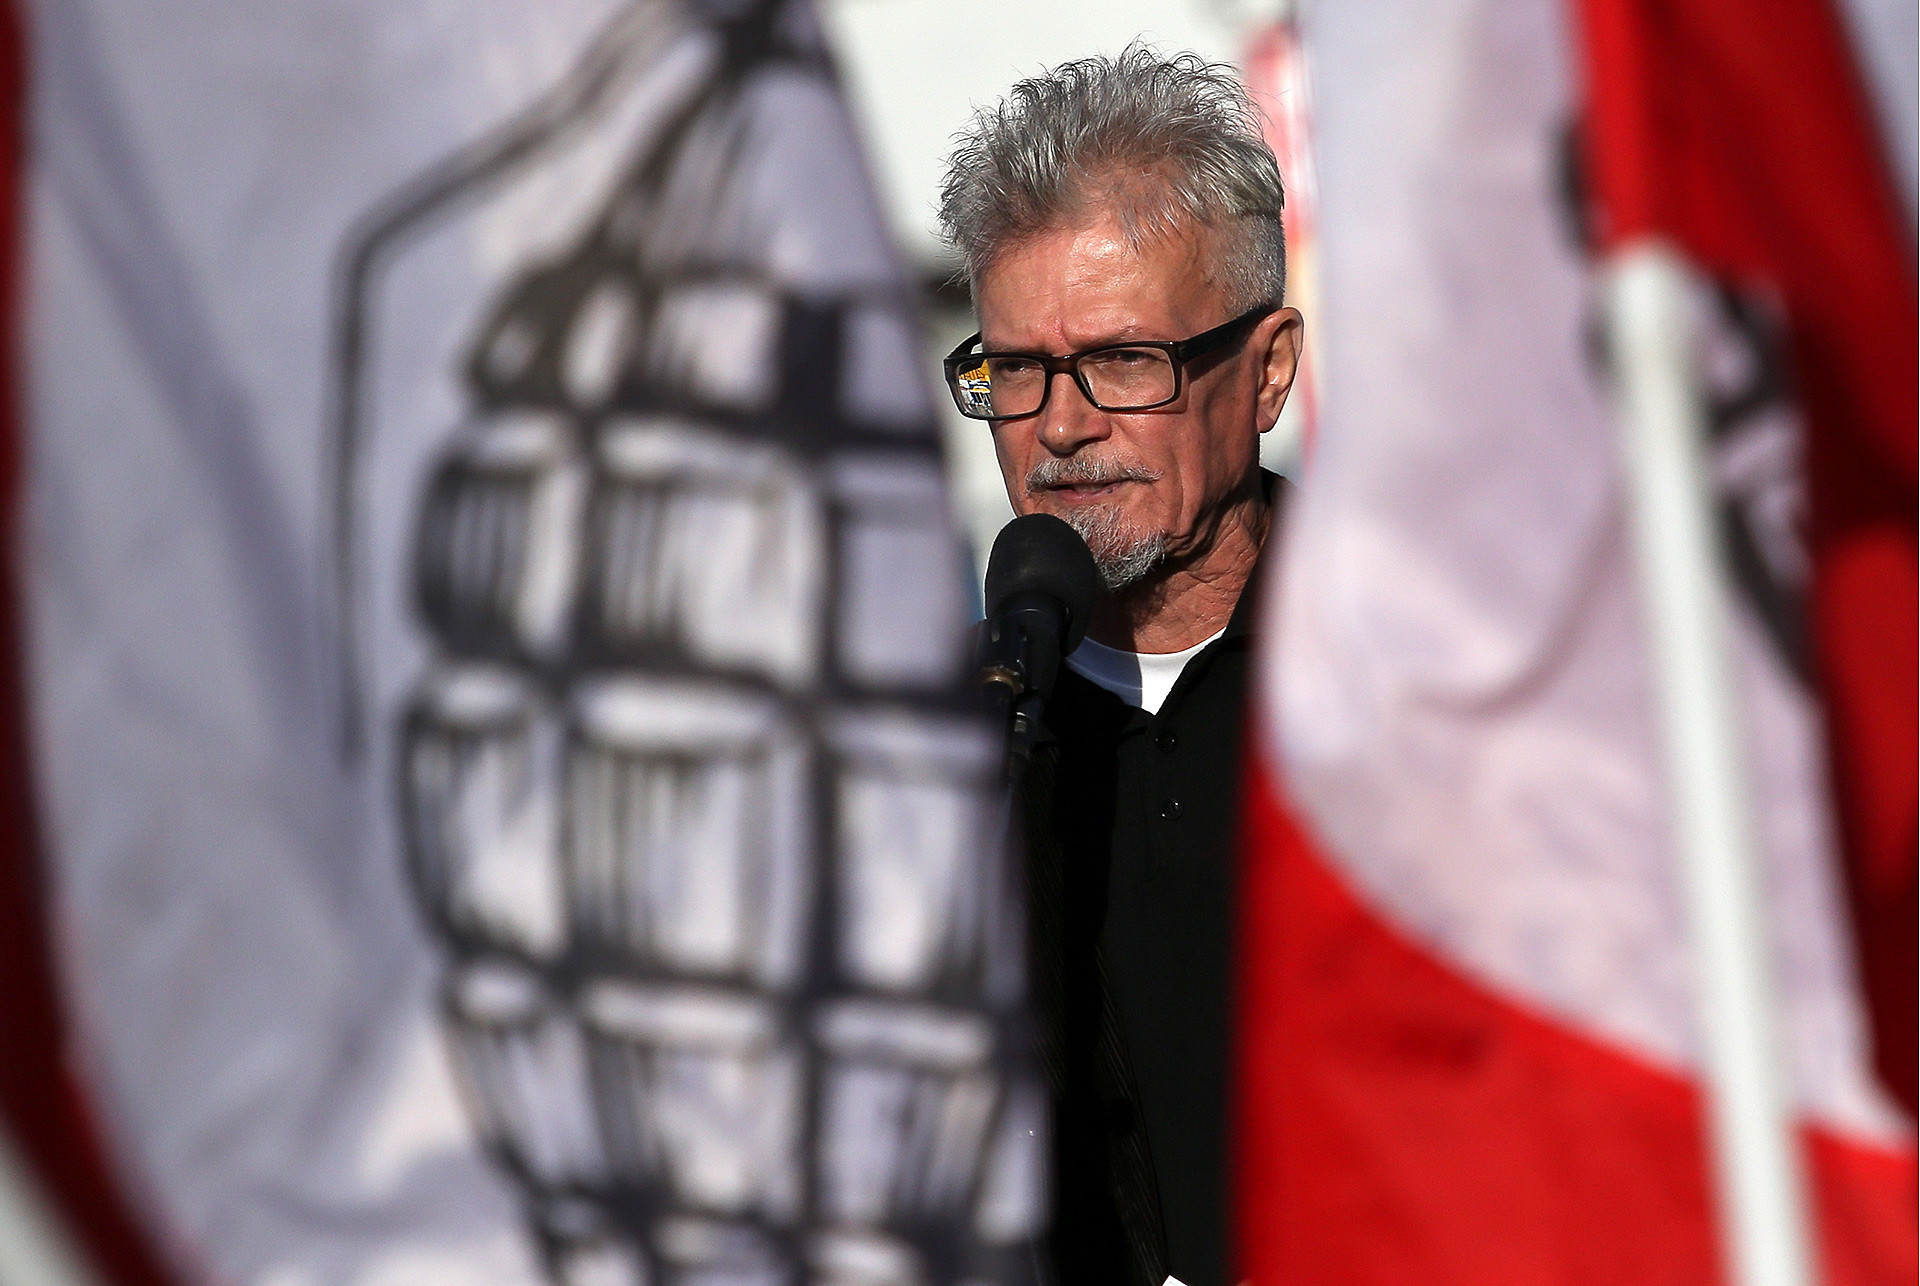 On this picture (taken in 2015) Limonov is far older than during his years in France, but his redoubtable style remains the same.